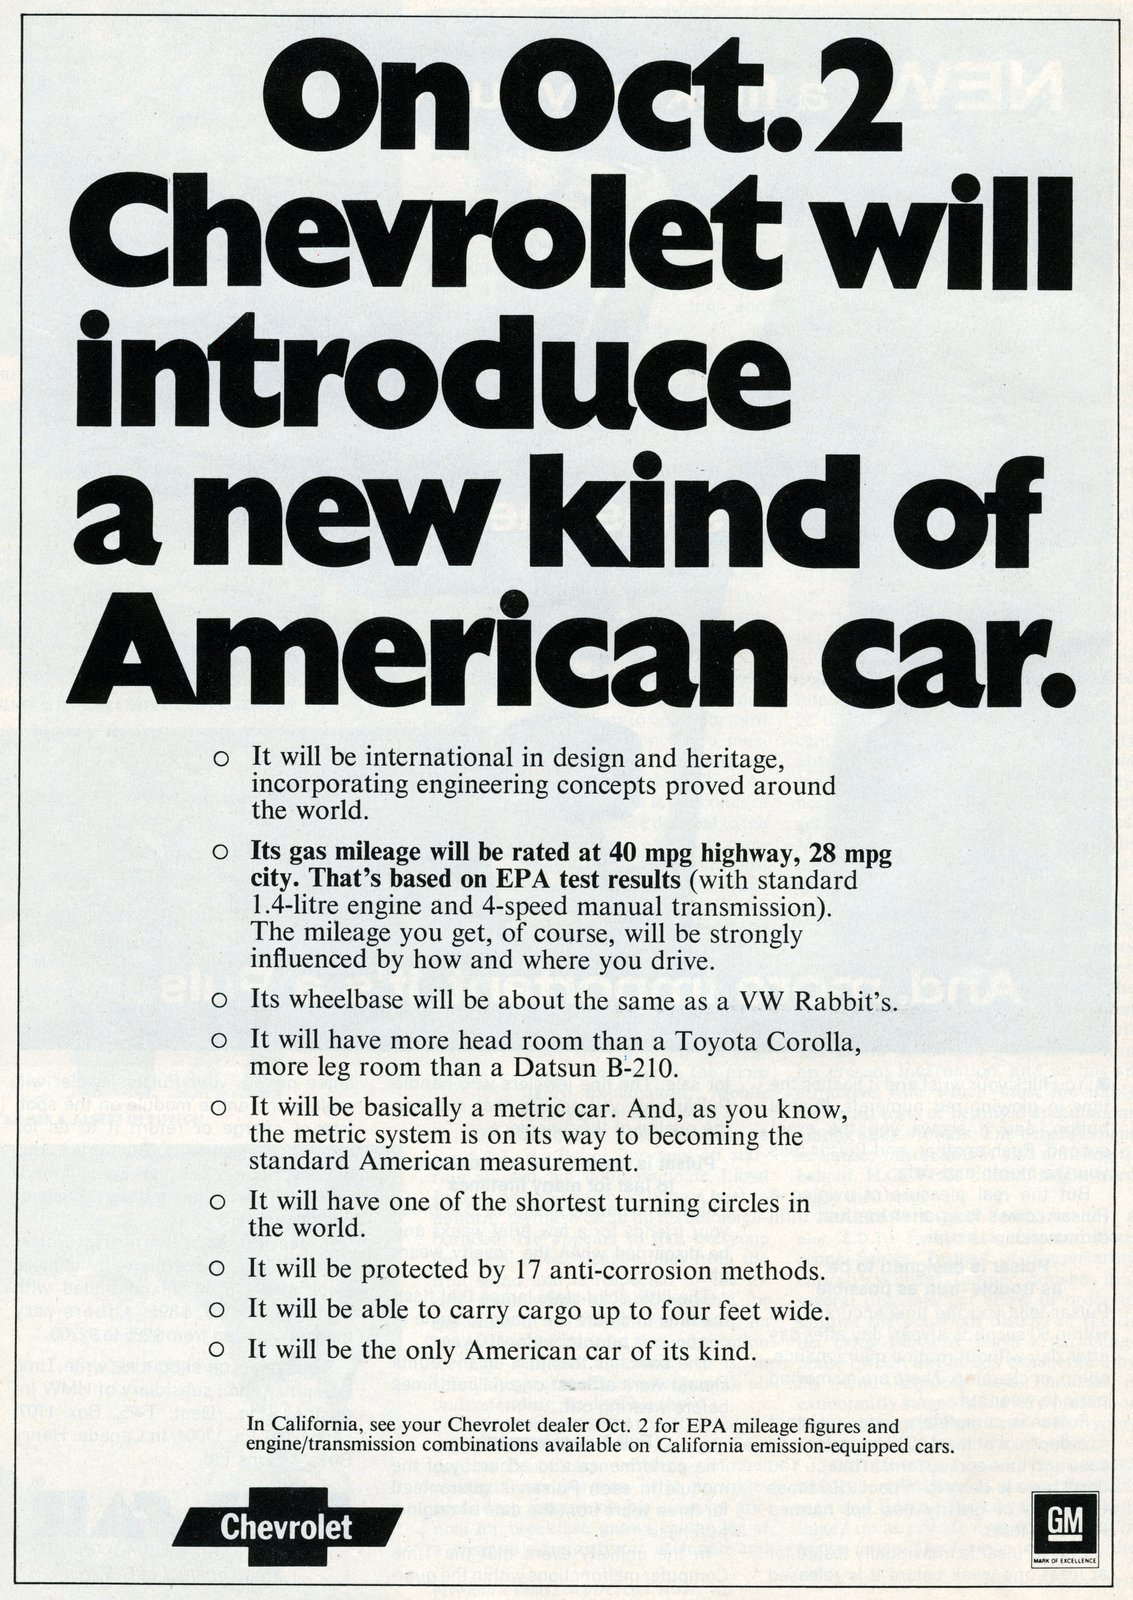 On October 2, Chevrolet will introduce a new kind of American car - September 1977